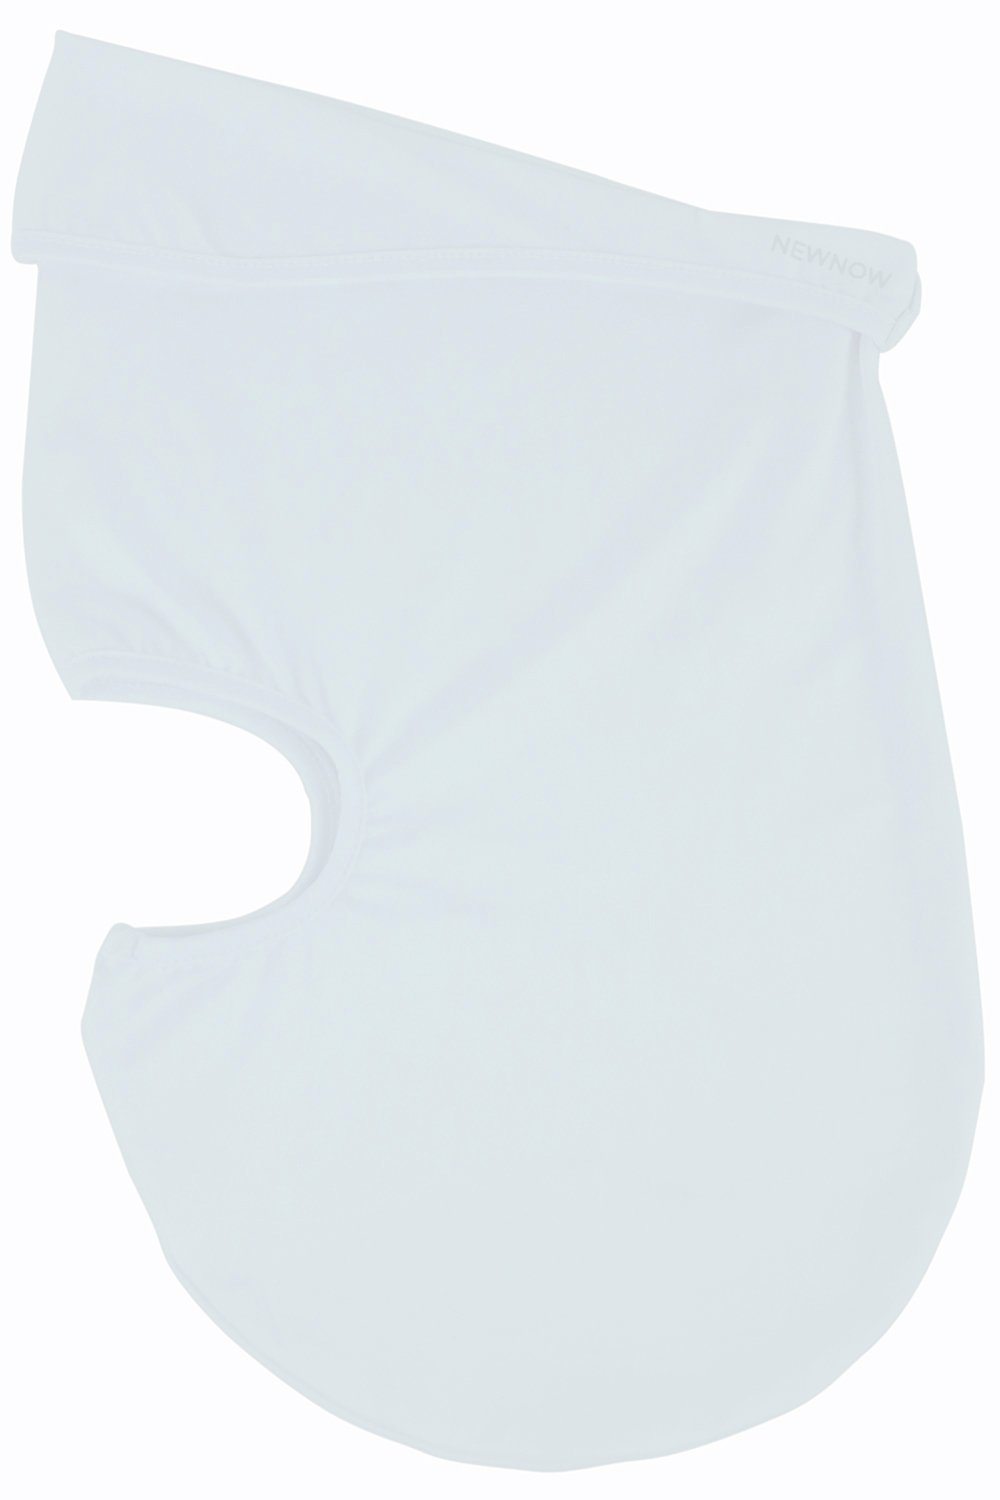 NewNow Candy Color Ultra Thin Ski Face Mask - Great Under A Bike / Football Helmet -Balaclava-White by NewNow (Image #3)